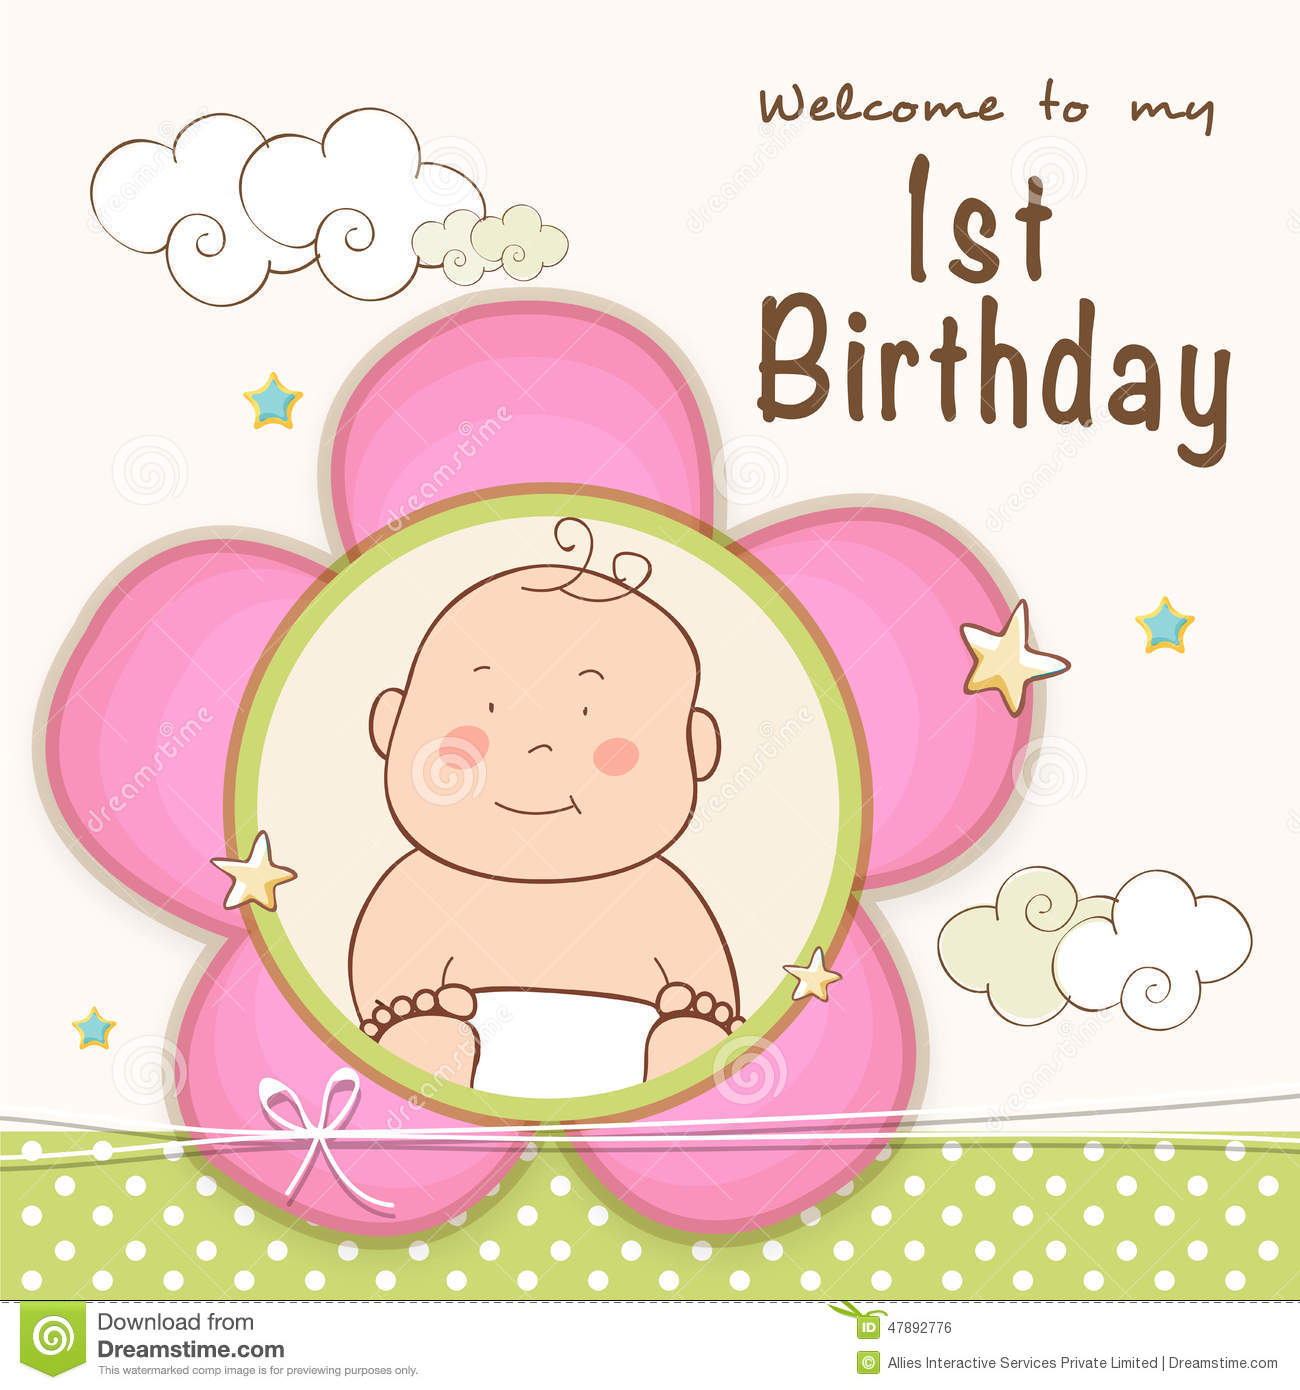 1st birthday invitation card design stock illustration 1st birthday invitation card design stopboris Images